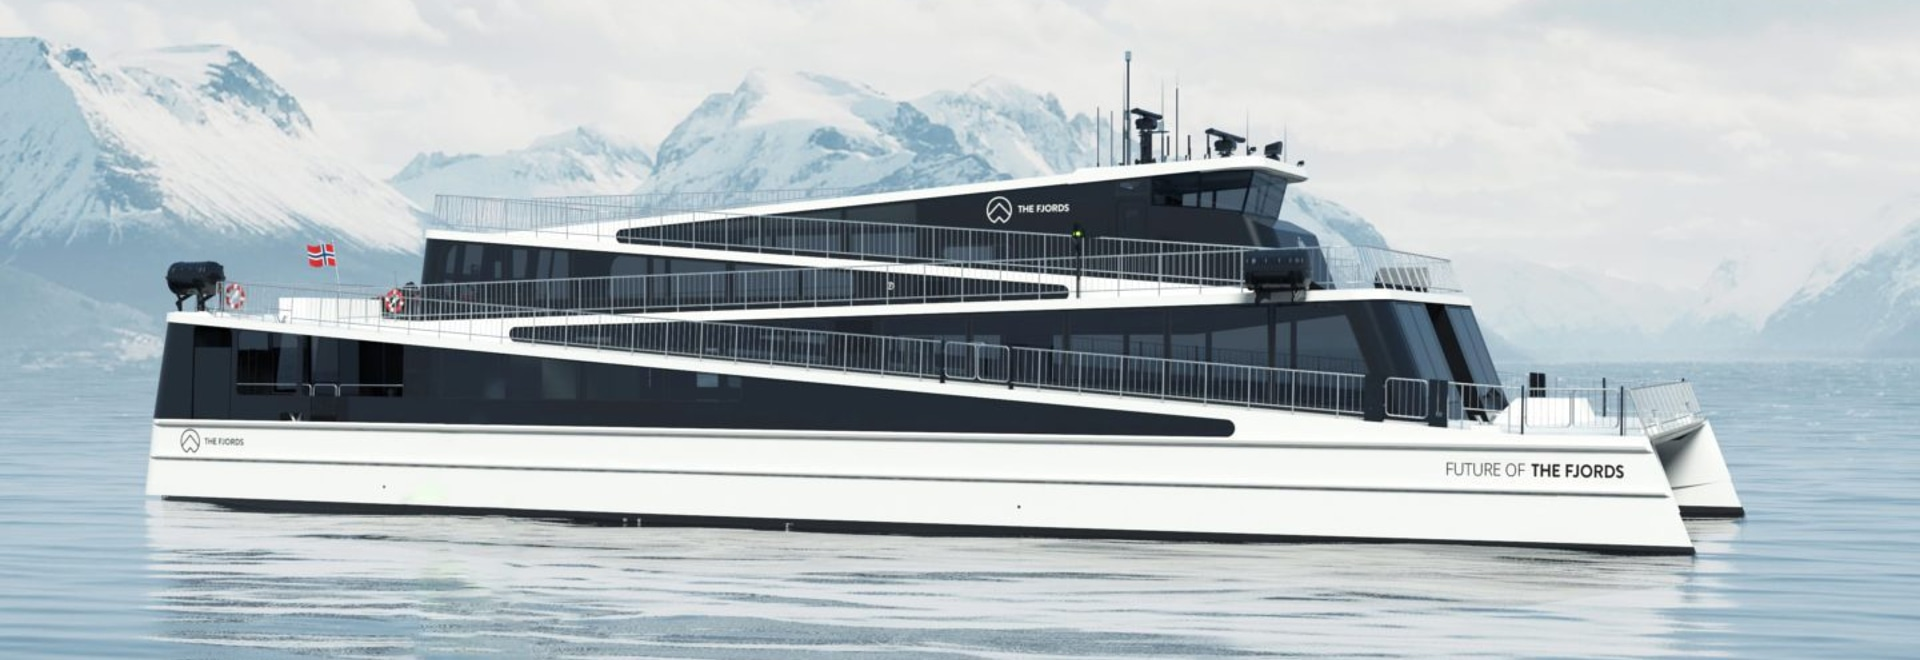 Future of The Fjords revealed with ground breaking zero emission passenger vessel